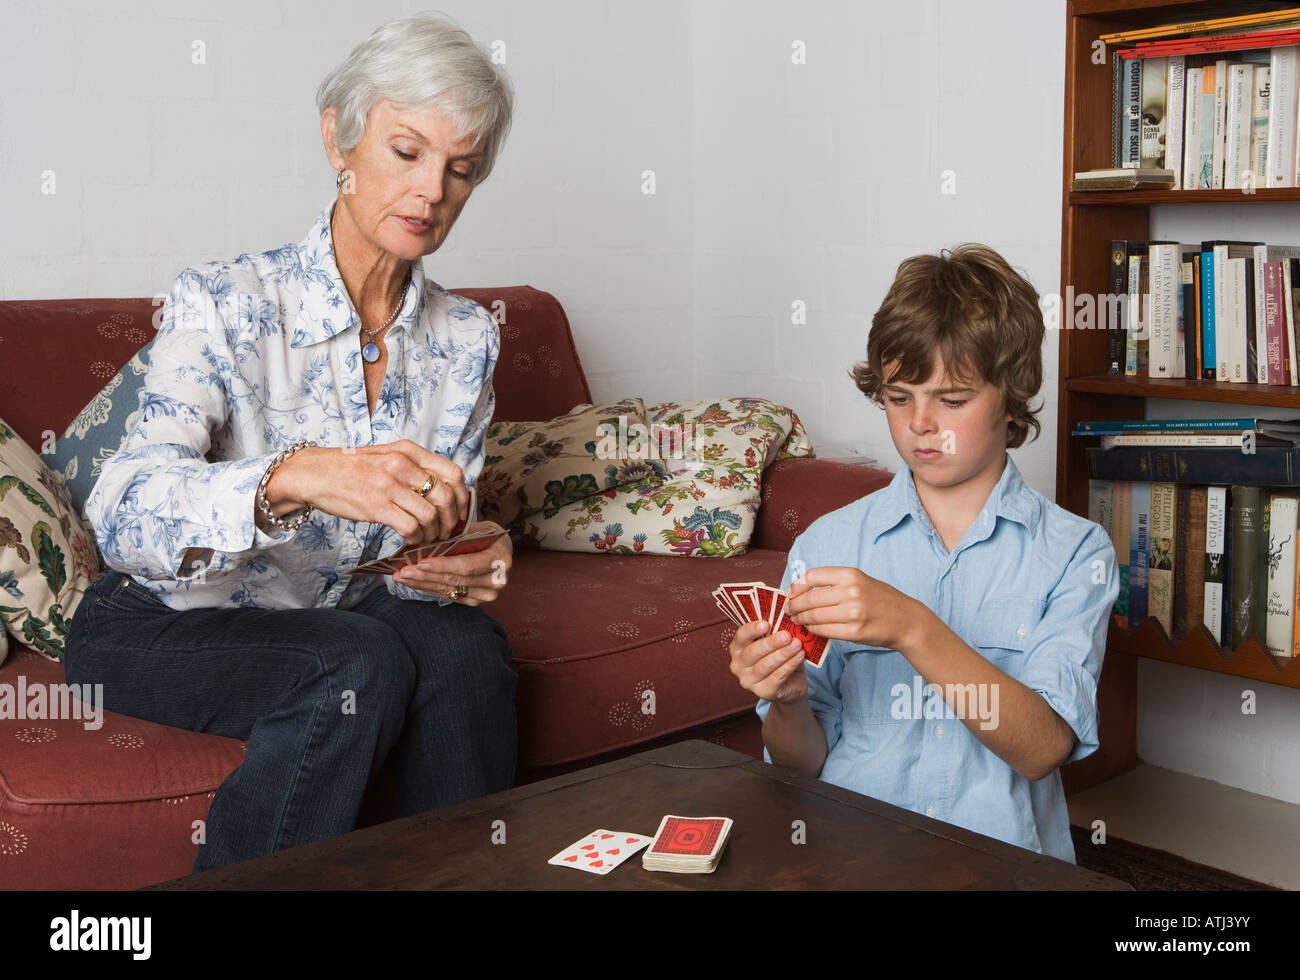 grandmother playing cards with grandson Stock Photo